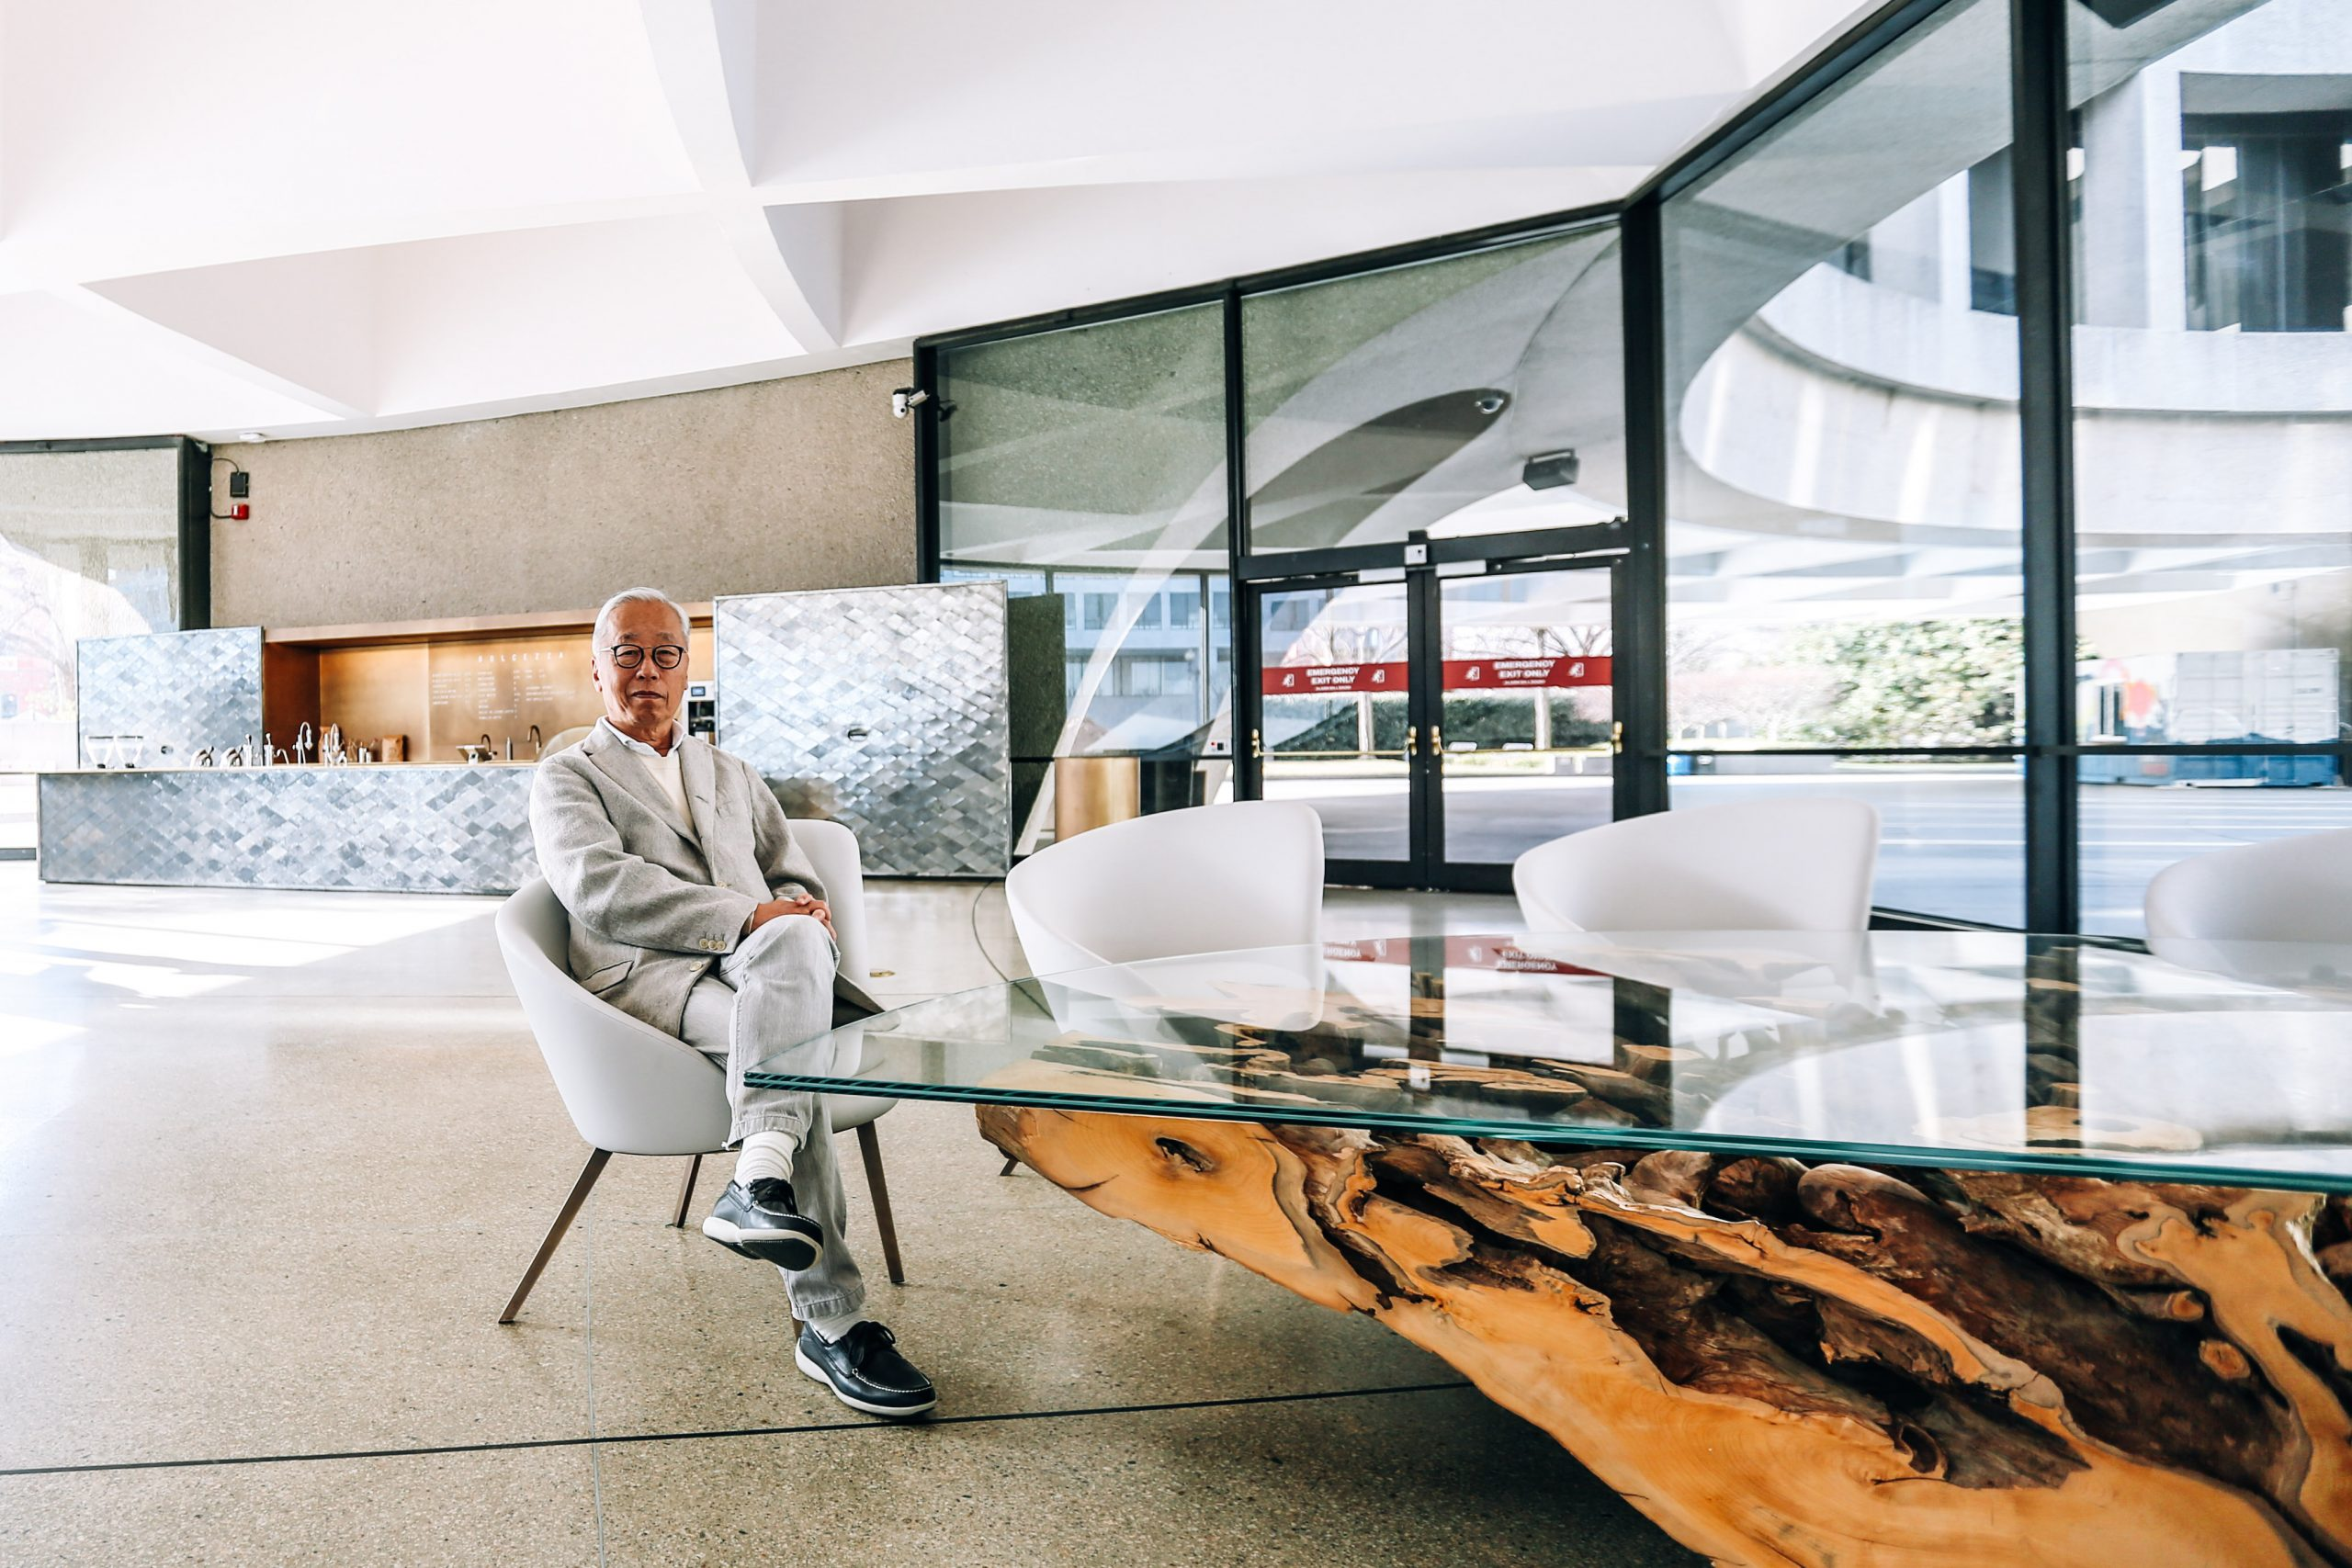 The Art World at Home: Hiroshi Sugimoto Is Reimagining the Hirshhorn Museum's Sculpture Garden and Making Elaborate Soufflés